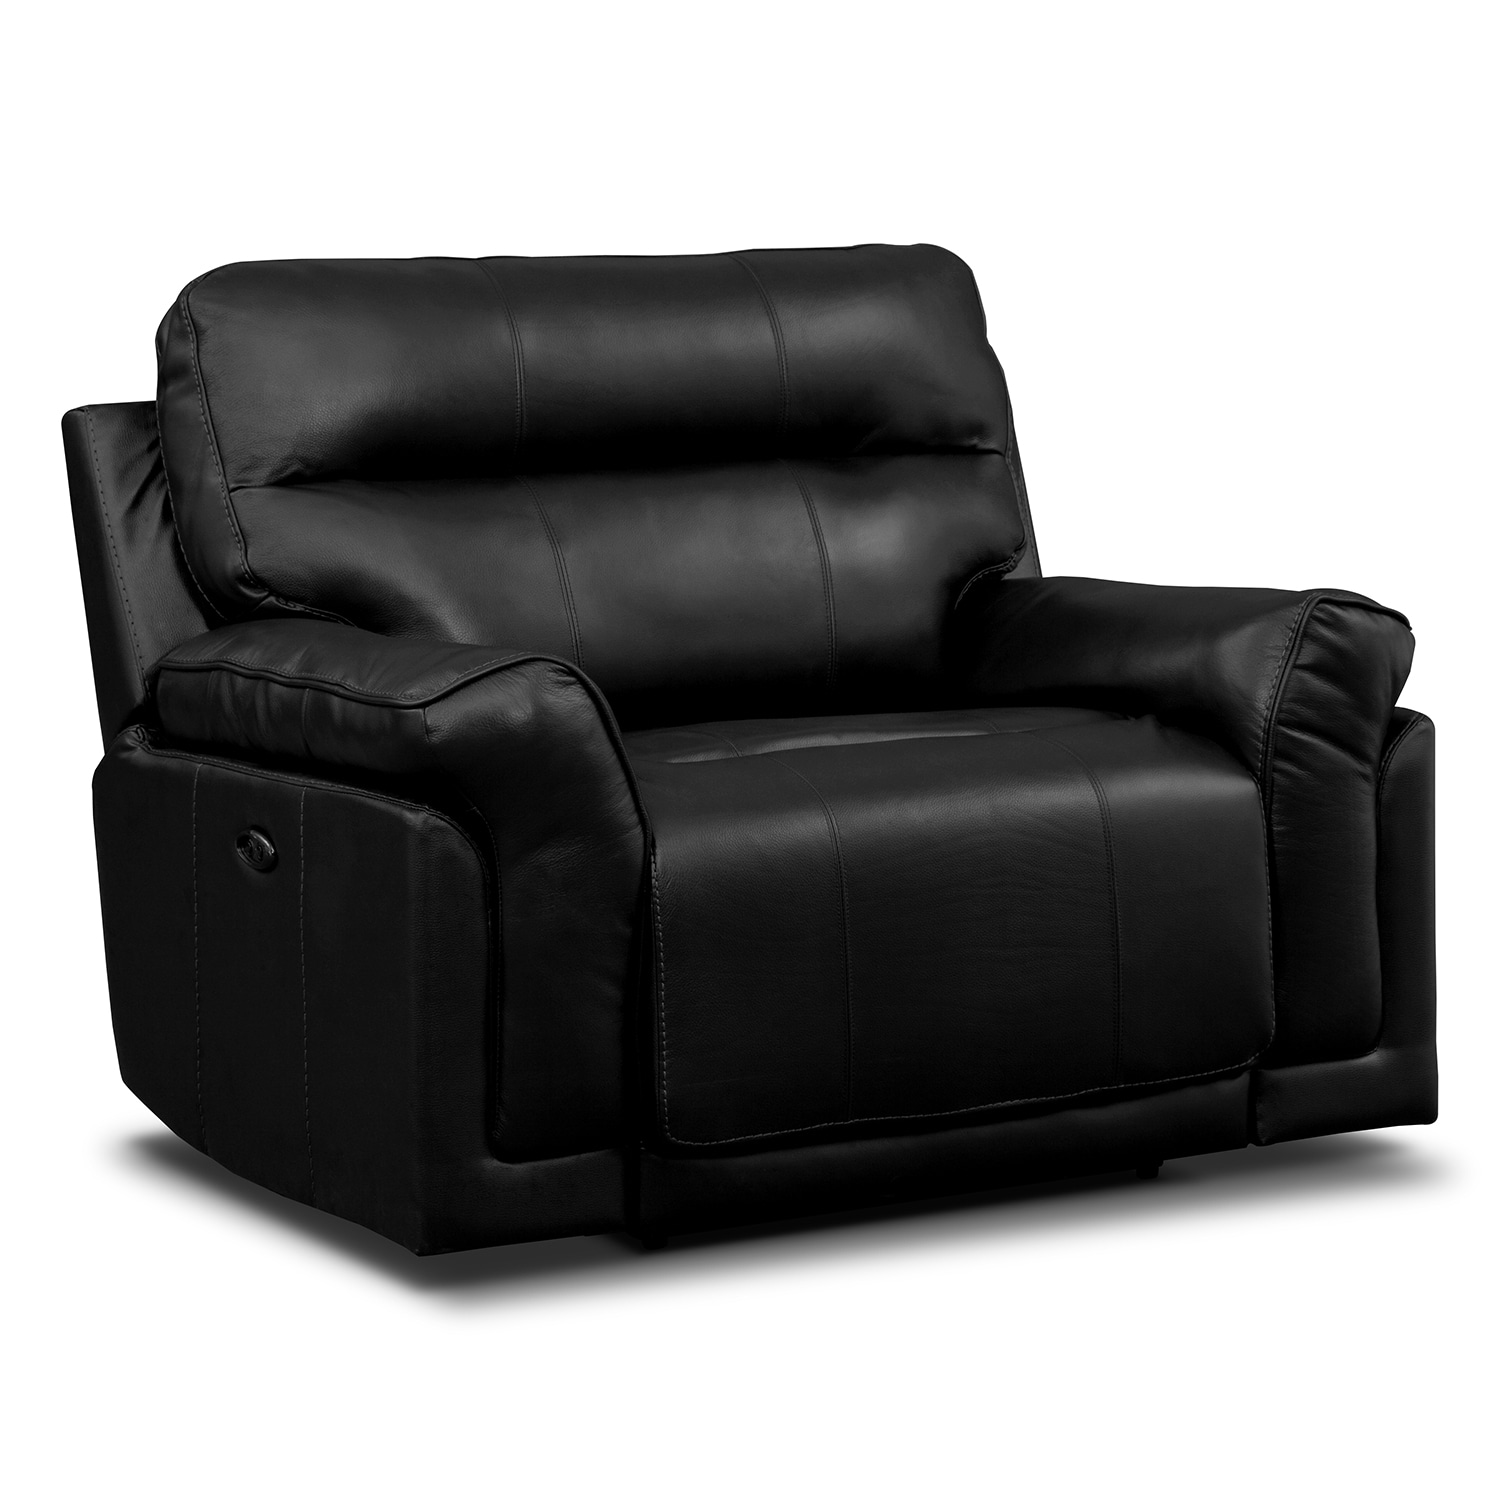 [Voyager Power Recliner]